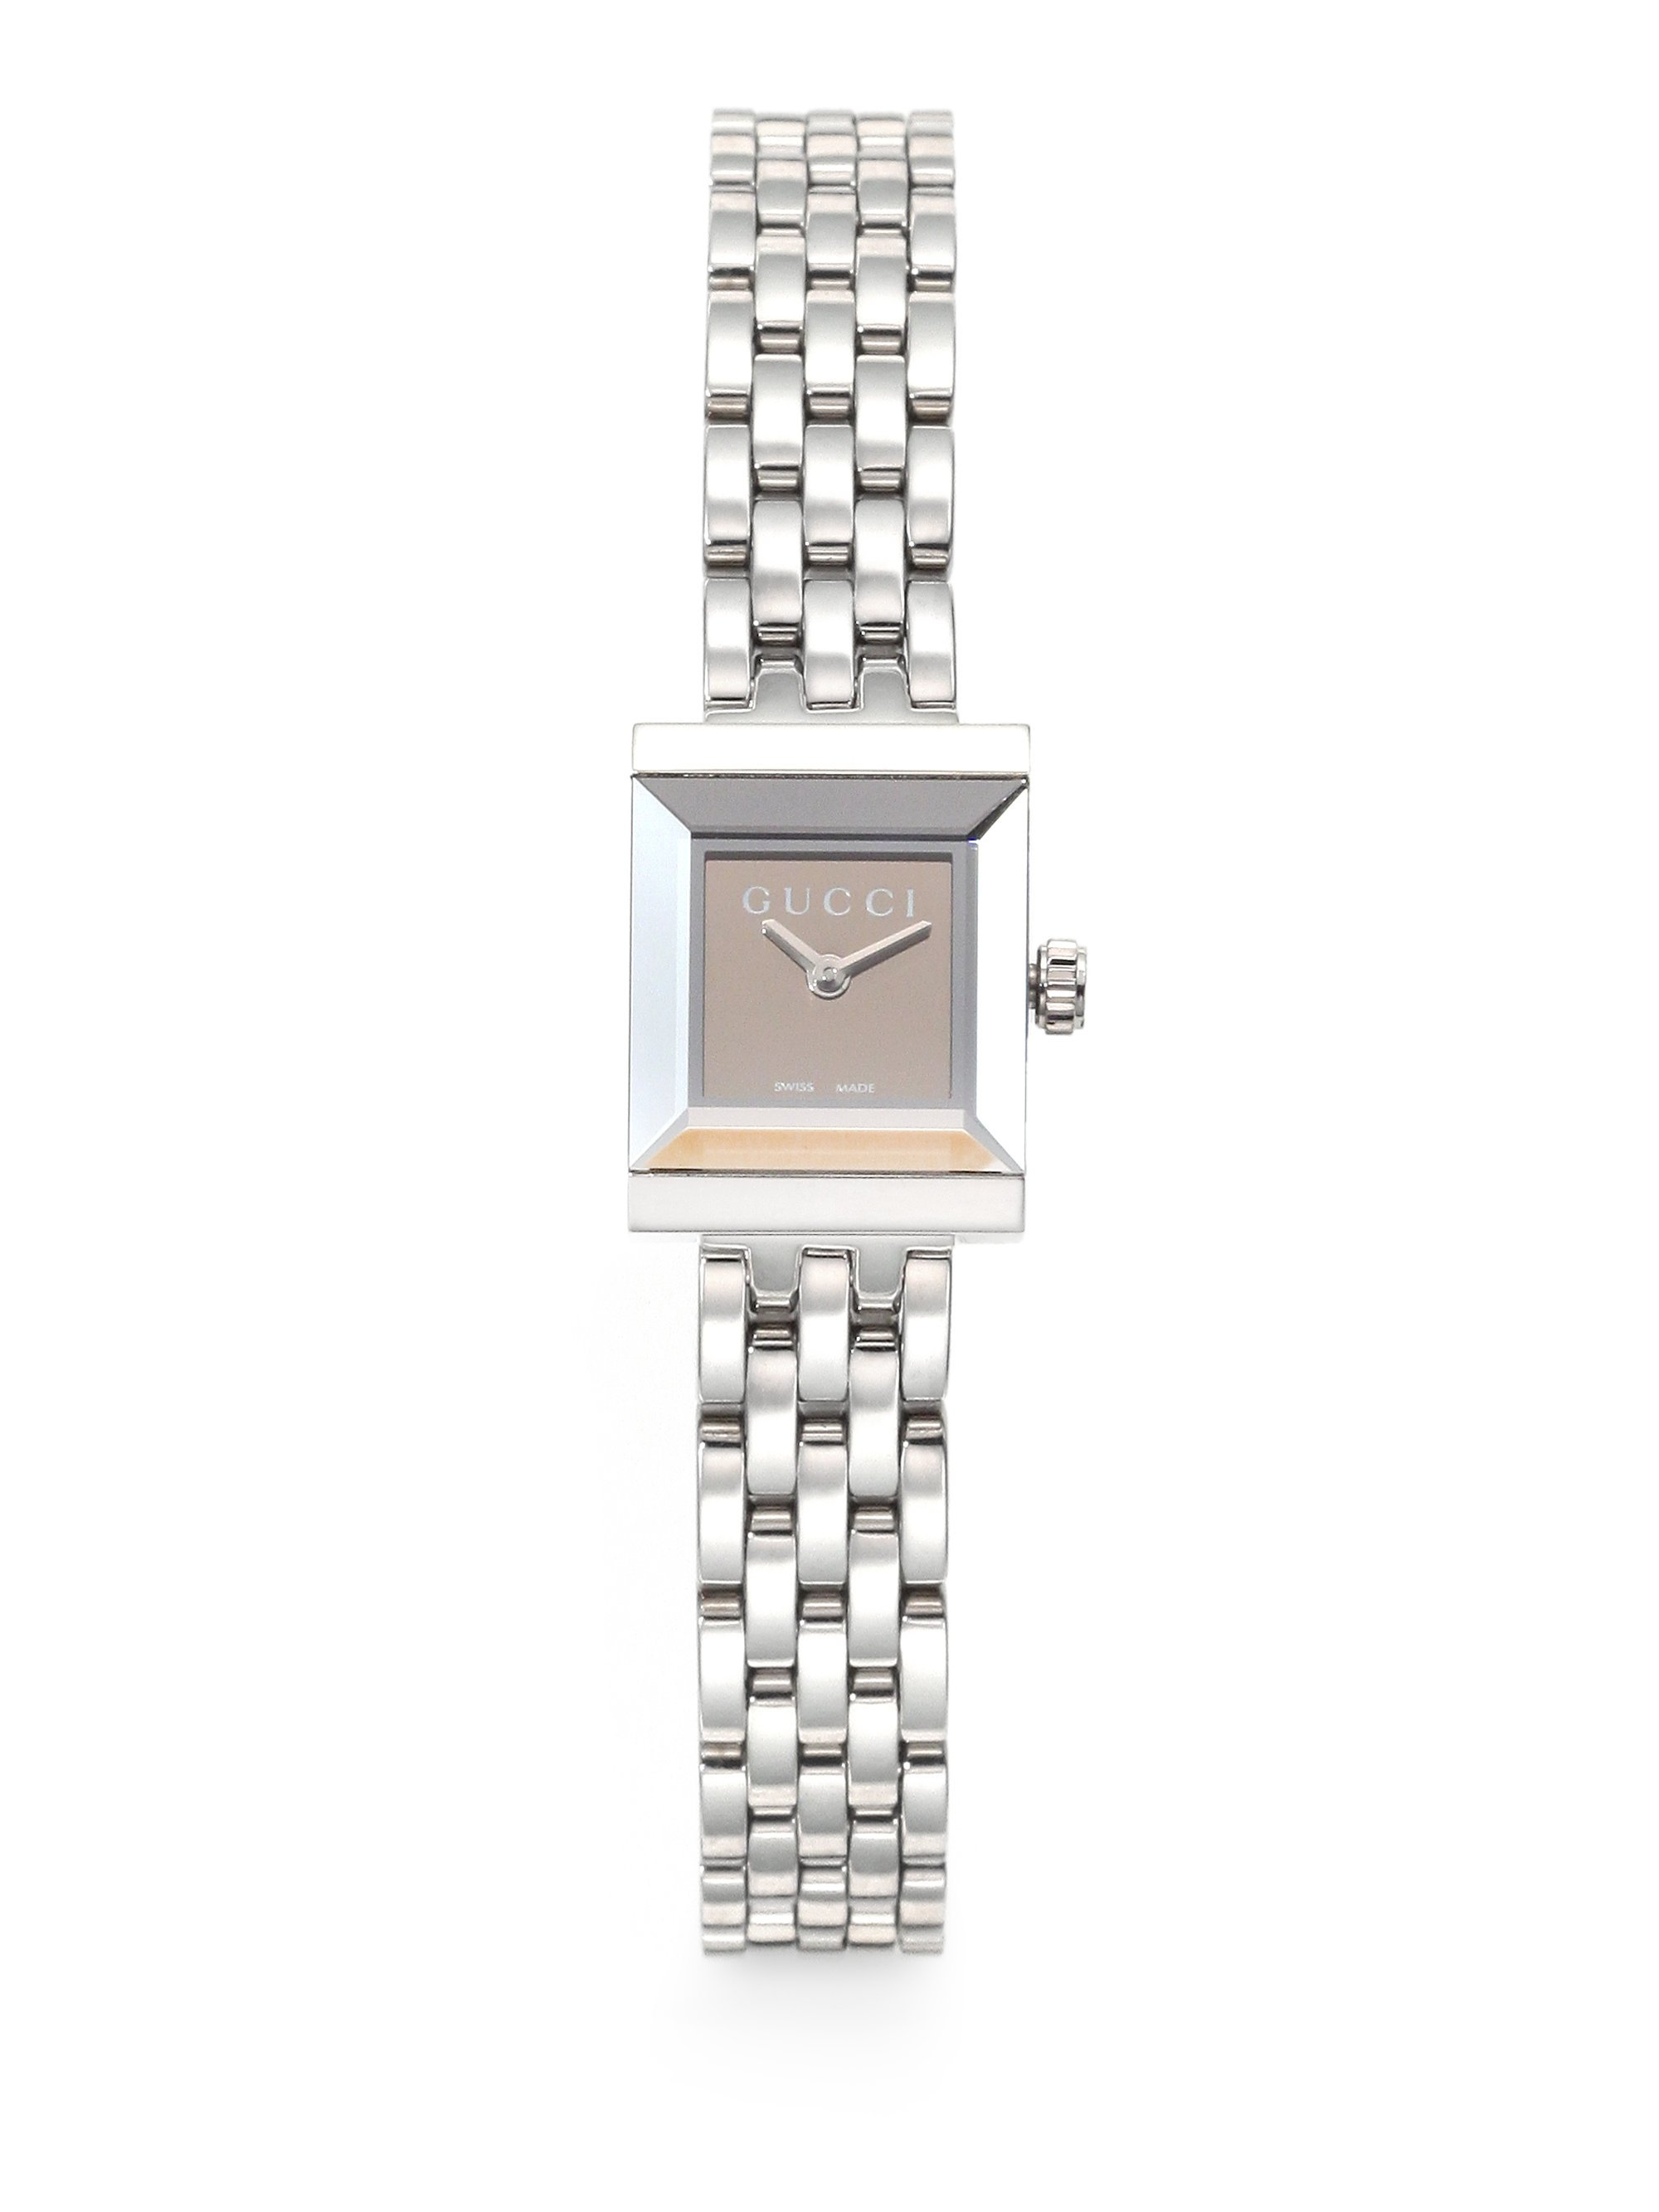 756c6af3a5b Lyst - Gucci G-frame Stainless Steel Square Watch in Metallic